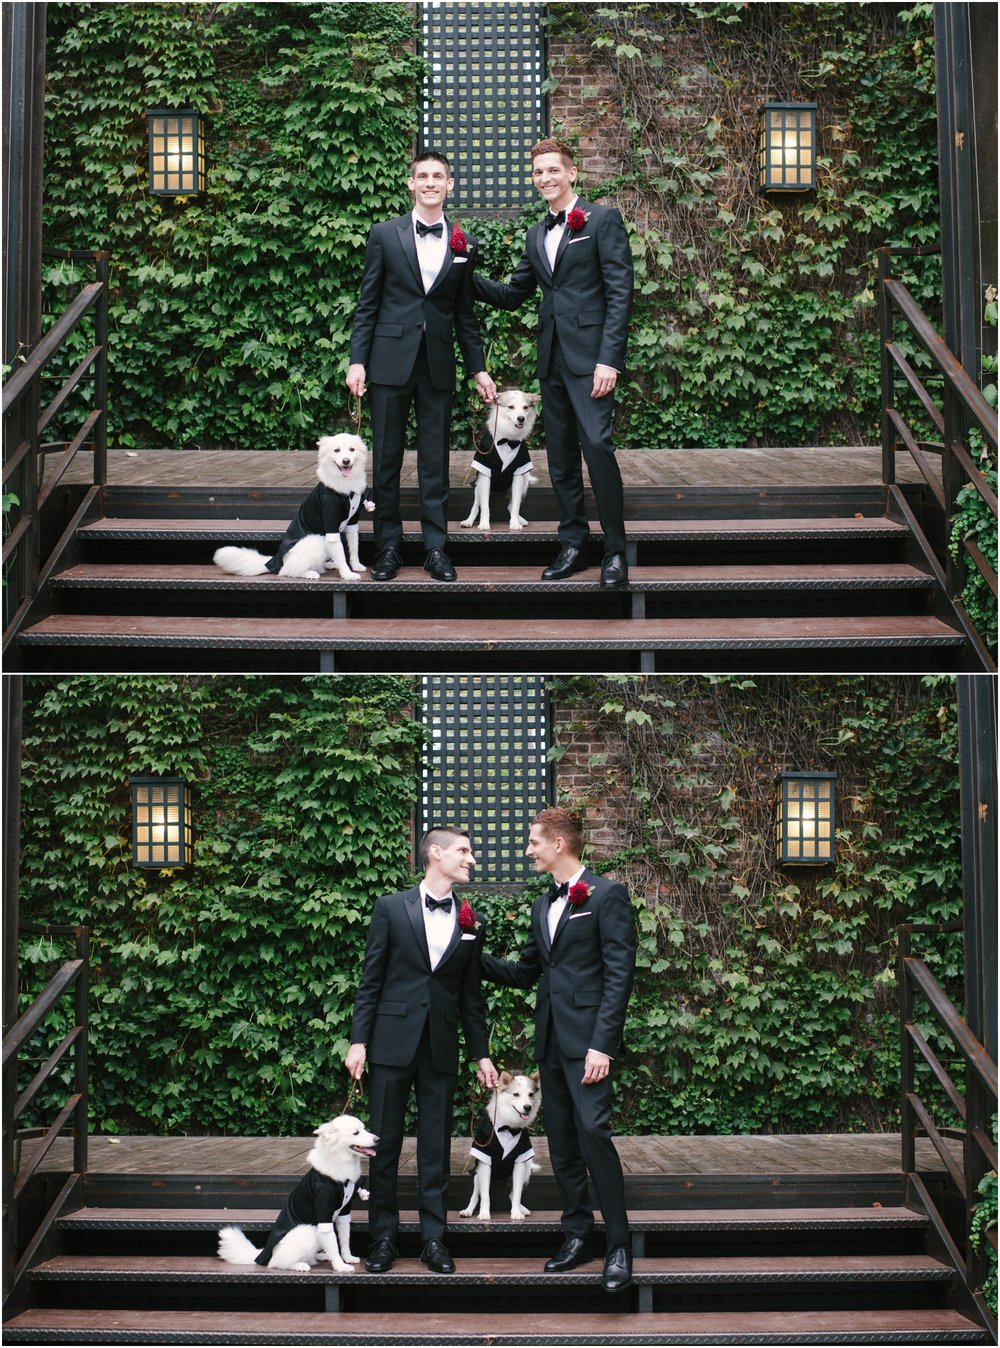 gay-wedding-photographer-williamsburgphotostudios-thefoundry-wedding-photographer_0014.jpg